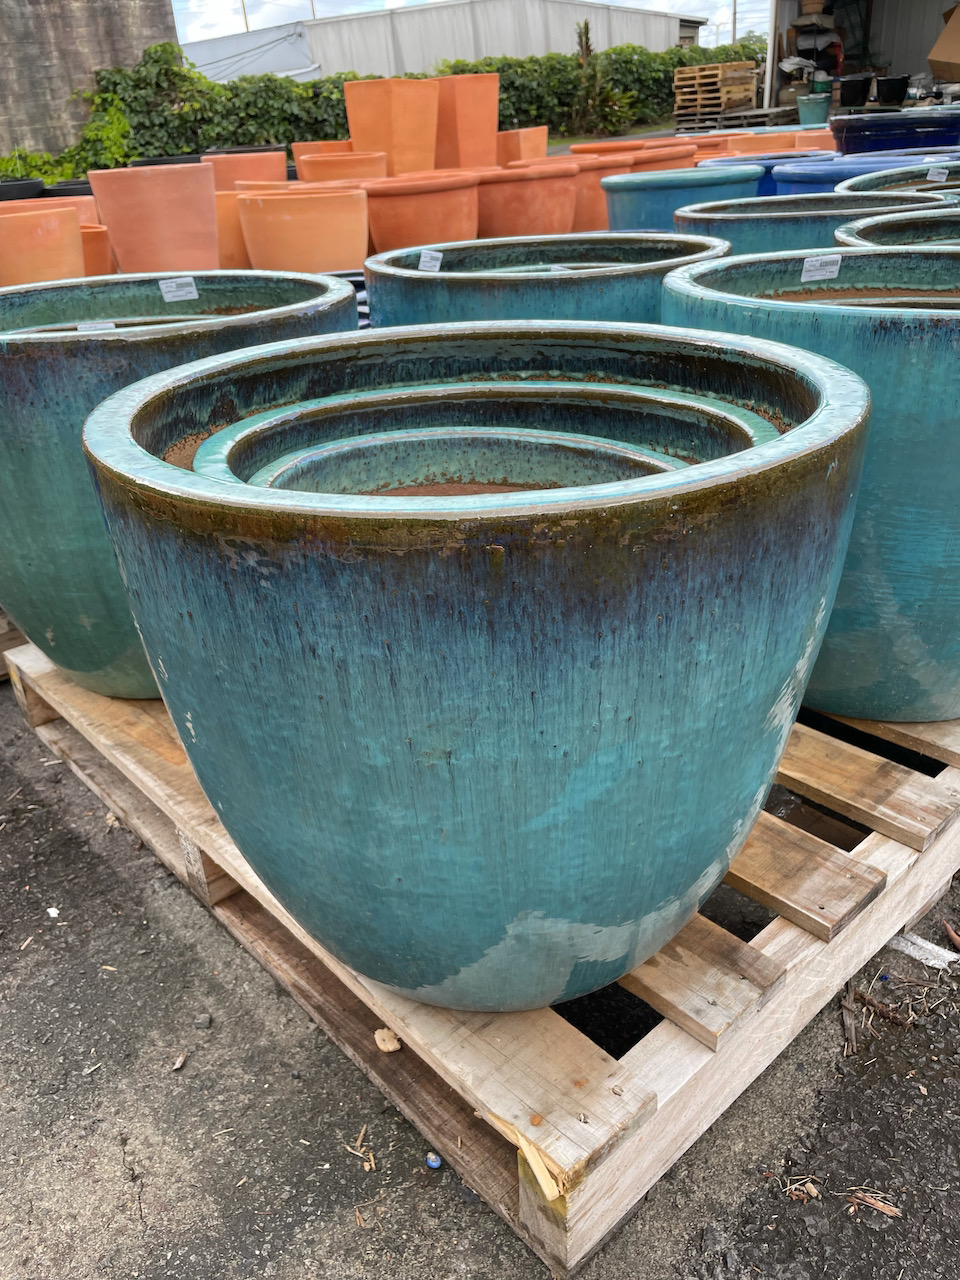 New Shipment of Pots are Here!